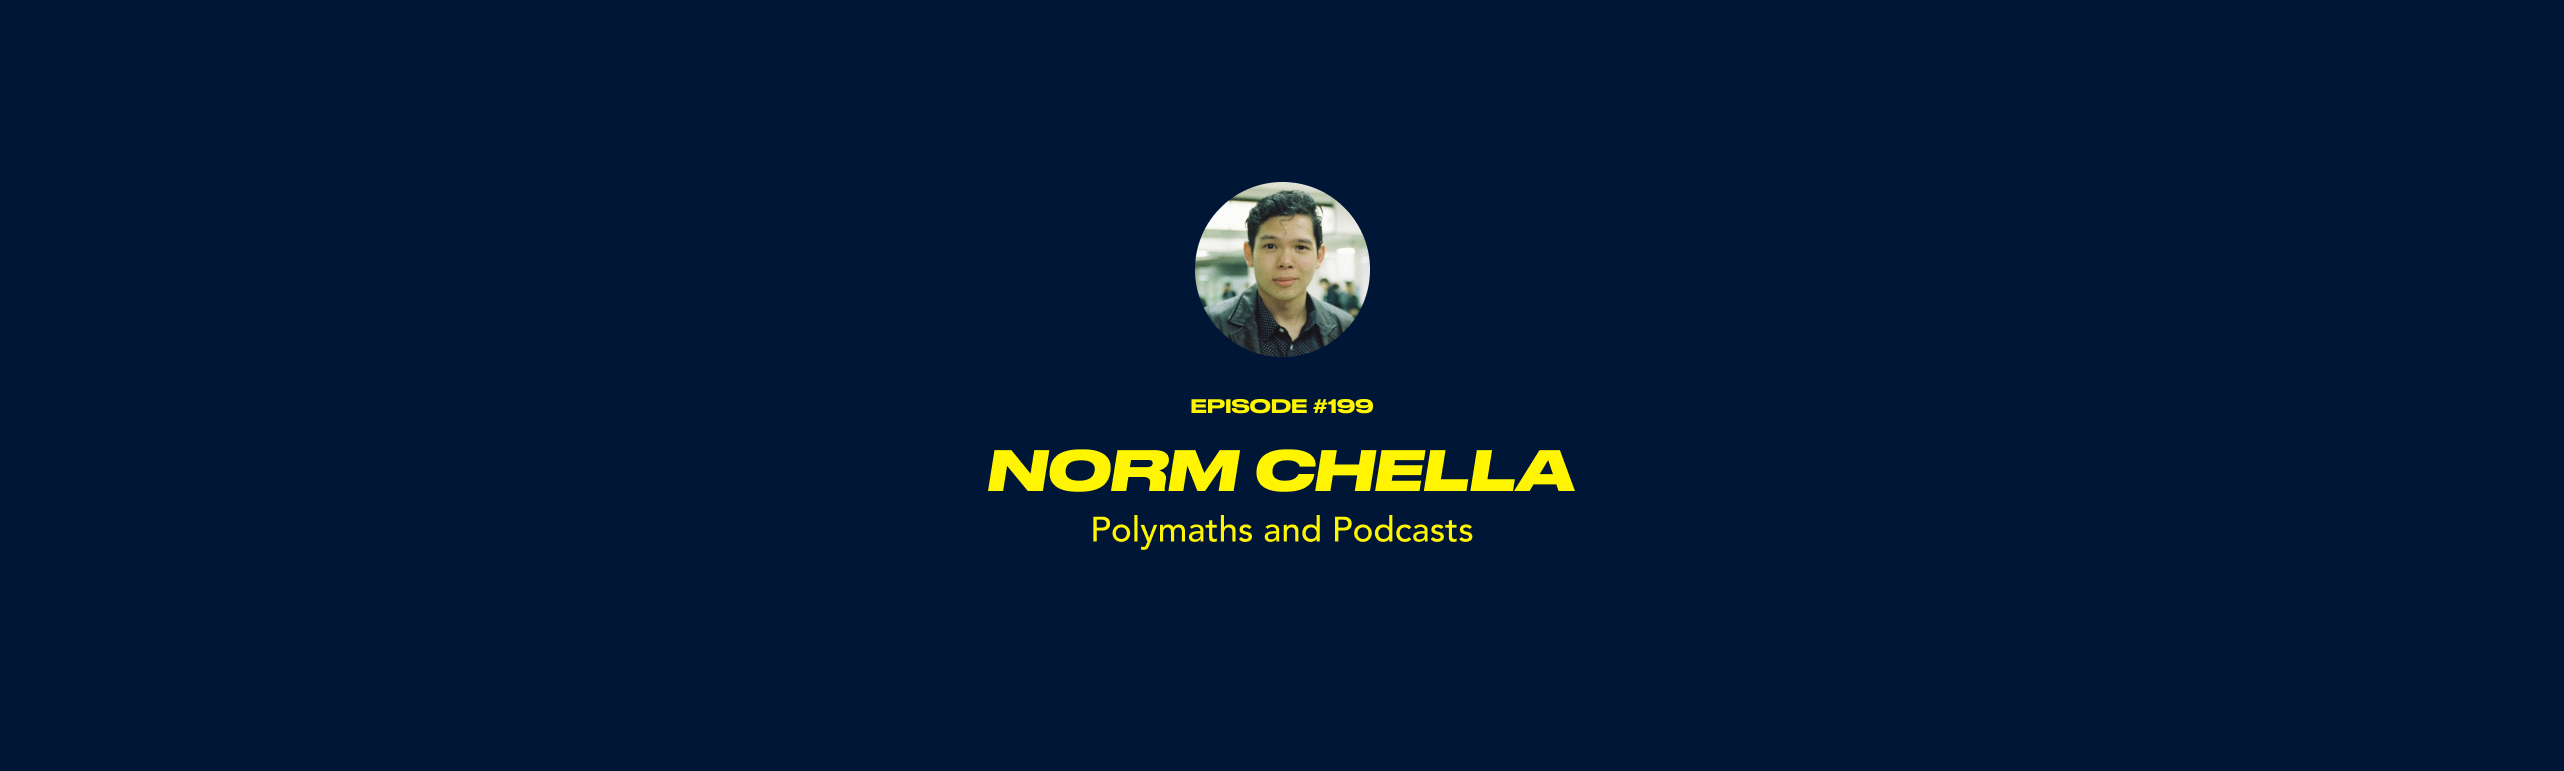 Norm Chella - Polymaths and Podcasts